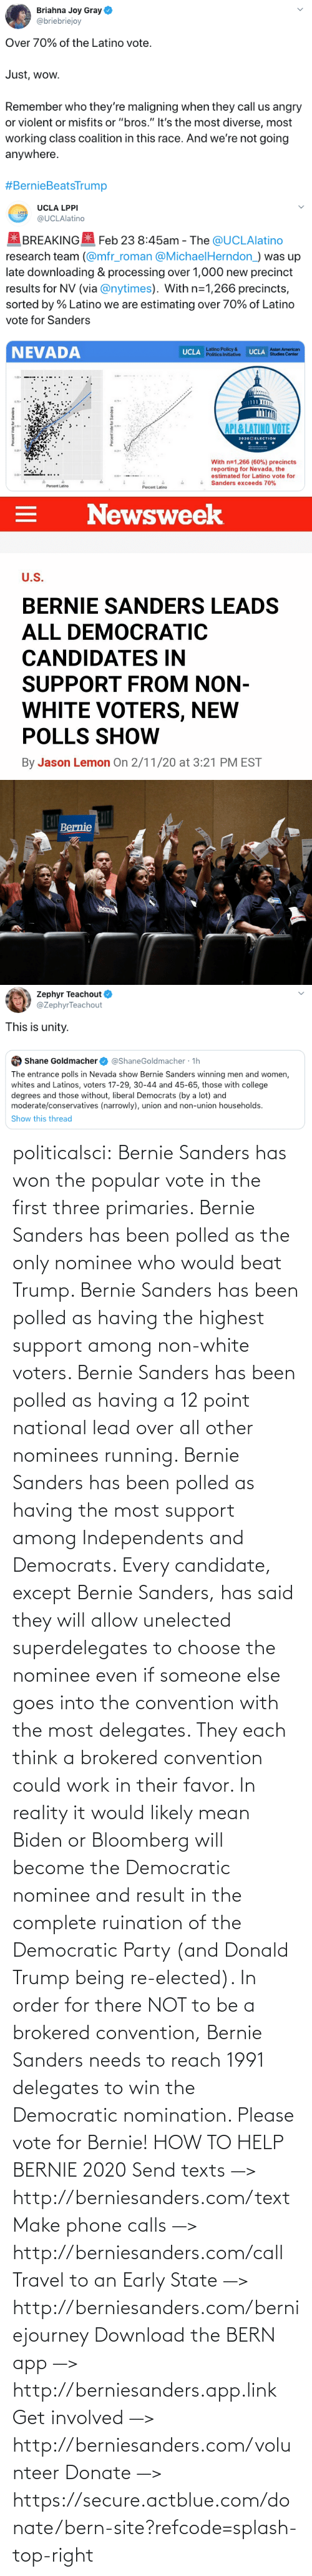 Texts: politicalsci: Bernie Sanders has won the popular vote in the first three primaries. Bernie Sanders has  been polled as the only nominee who would beat Trump. Bernie Sanders  has been polled as having the highest support among non-white voters.  Bernie Sanders has been polled as having a 12 point national lead over  all other nominees running. Bernie Sanders has been polled as having the most support among Independents and Democrats.  Every candidate, except Bernie Sanders, has said they will allow  unelected superdelegates to choose the nominee even if someone else goes  into the convention with the most delegates. They each think a brokered  convention could work in their favor. In  reality it would likely mean Biden or Bloomberg will become the  Democratic nominee and result in the complete ruination of the  Democratic Party (and Donald Trump being re-elected). In order for there  NOT to be a brokered  convention, Bernie Sanders needs to reach 1991 delegates to win the  Democratic  nomination. Please vote for Bernie!  HOW TO HELP BERNIE 2020 Send texts —> http://berniesanders.com/text  Make phone calls —> http://berniesanders.com/call  Travel to an Early State —> http://berniesanders.com/berniejourney  Download the BERN app —> http://berniesanders.app.link  Get involved —> http://berniesanders.com/volunteer Donate —> https://secure.actblue.com/donate/bern-site?refcode=splash-top-right